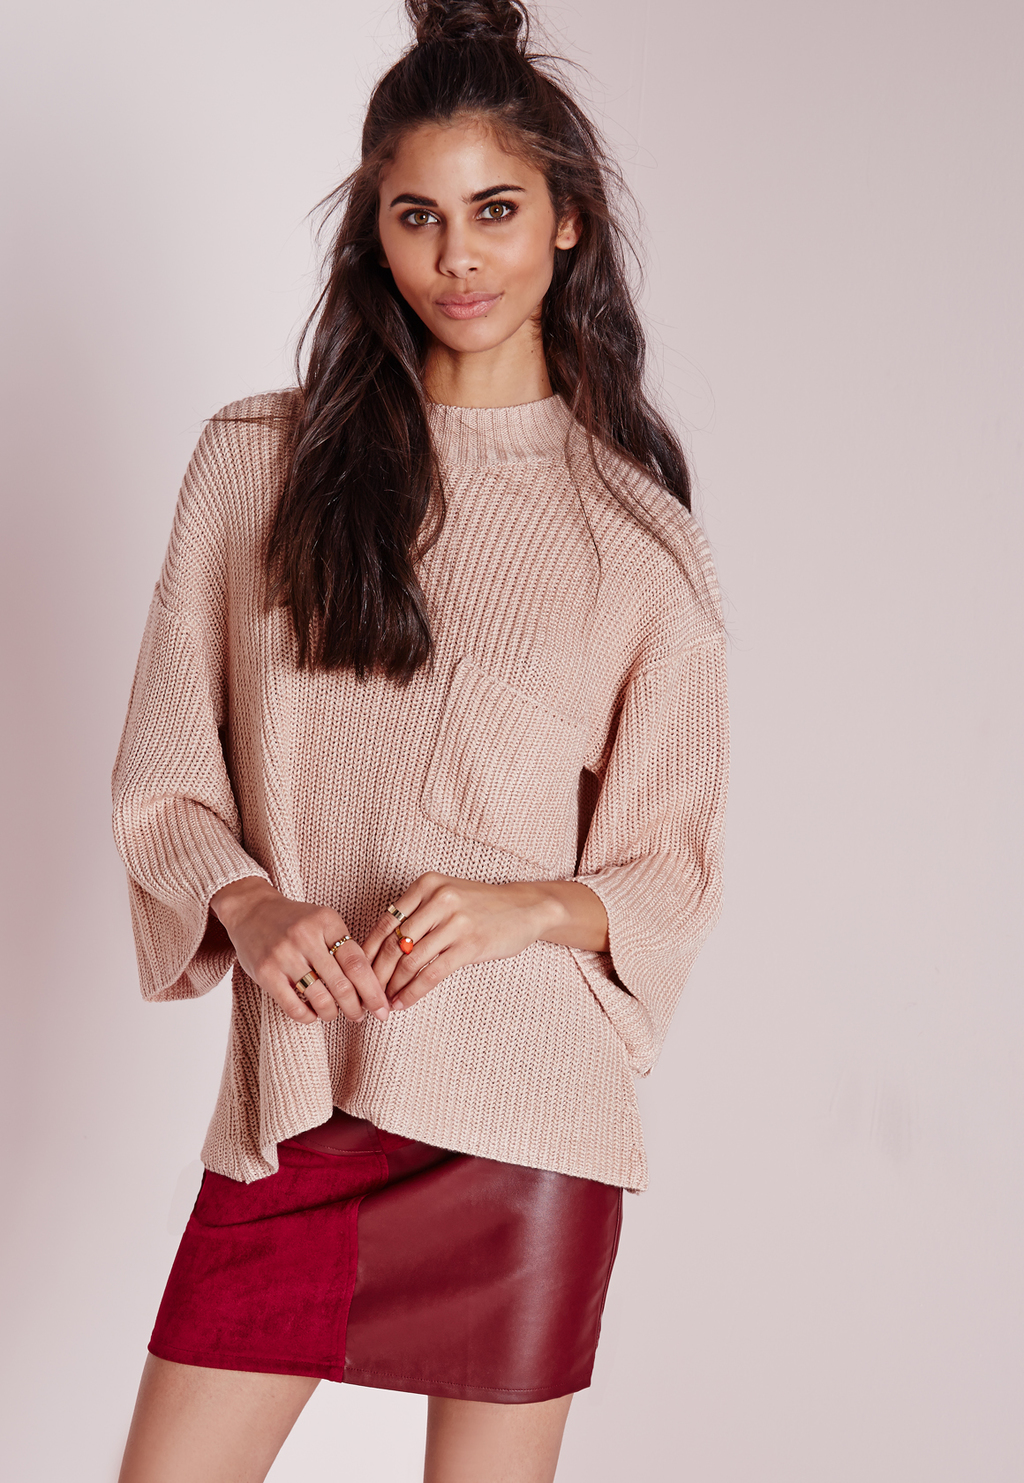 Petite Pocket Detail Boxy Jumper Nude, Beige - pattern: plain; length: below the bottom; style: tunic; predominant colour: blush; occasions: casual, creative work; fibres: acrylic - 100%; fit: loose; neckline: crew; sleeve length: 3/4 length; sleeve style: standard; texture group: knits/crochet; pattern type: knitted - fine stitch; season: a/w 2015; wardrobe: basic